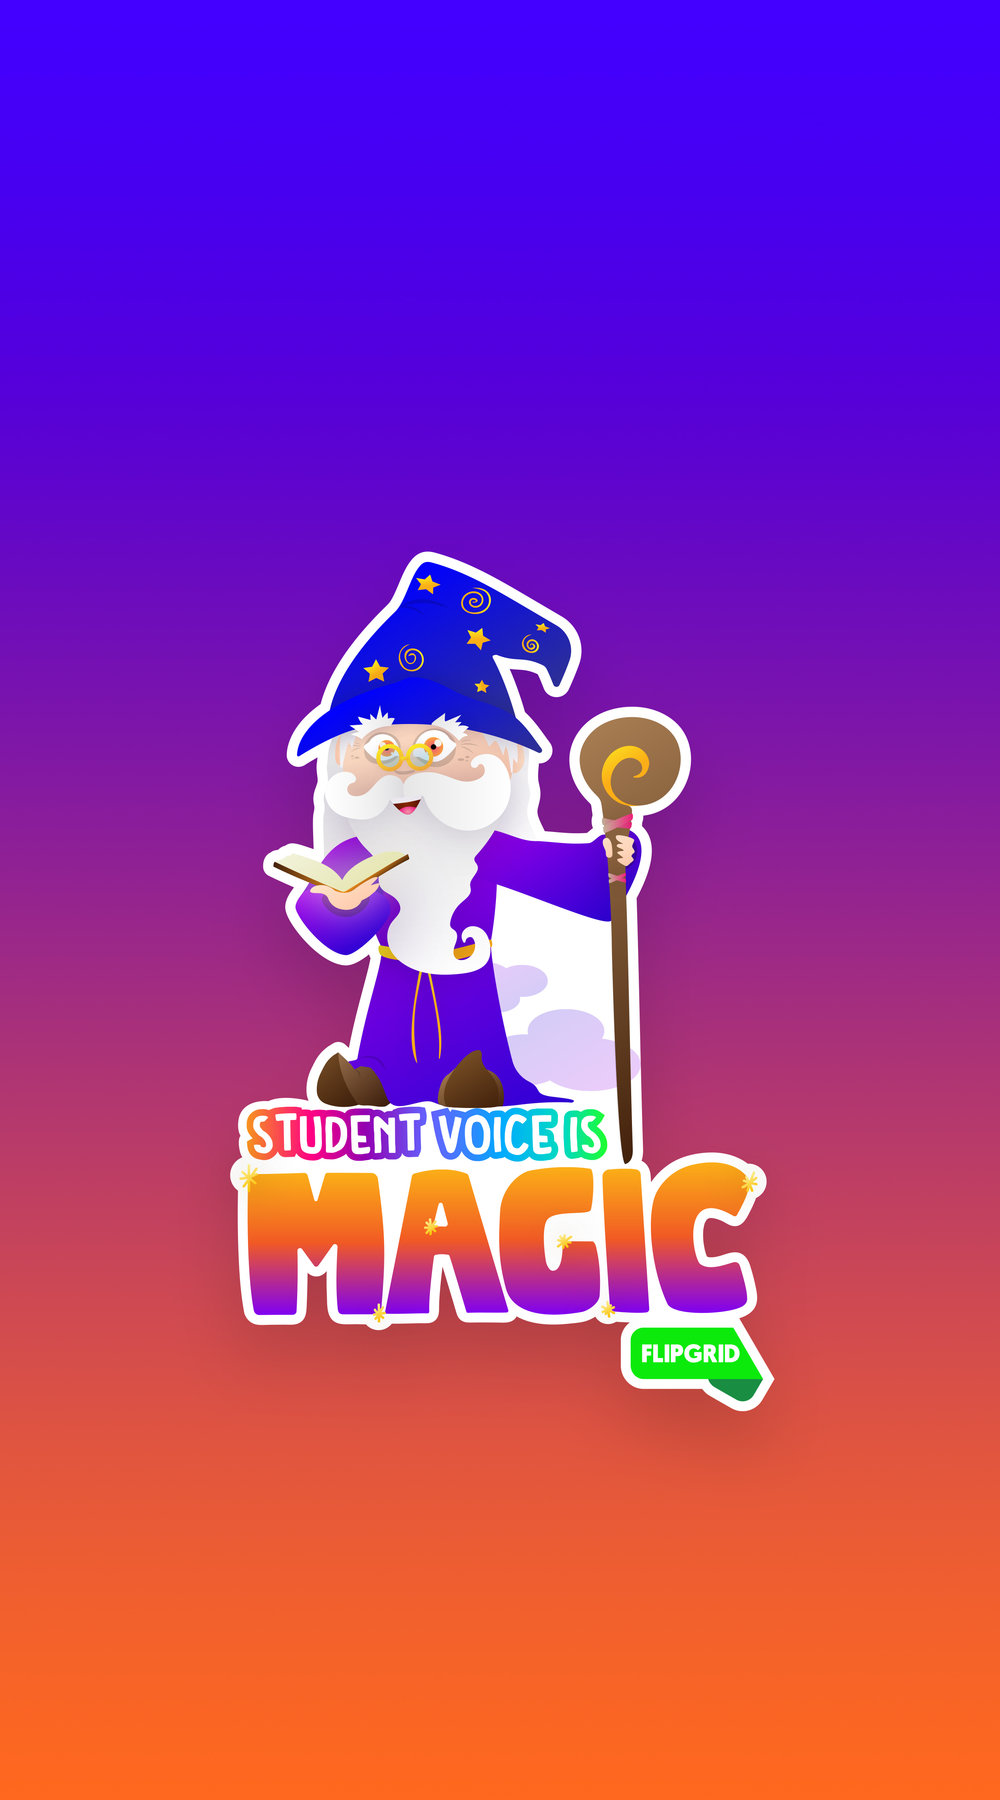 Flipgrid_Wizard_Magic_wallpaper.jpg